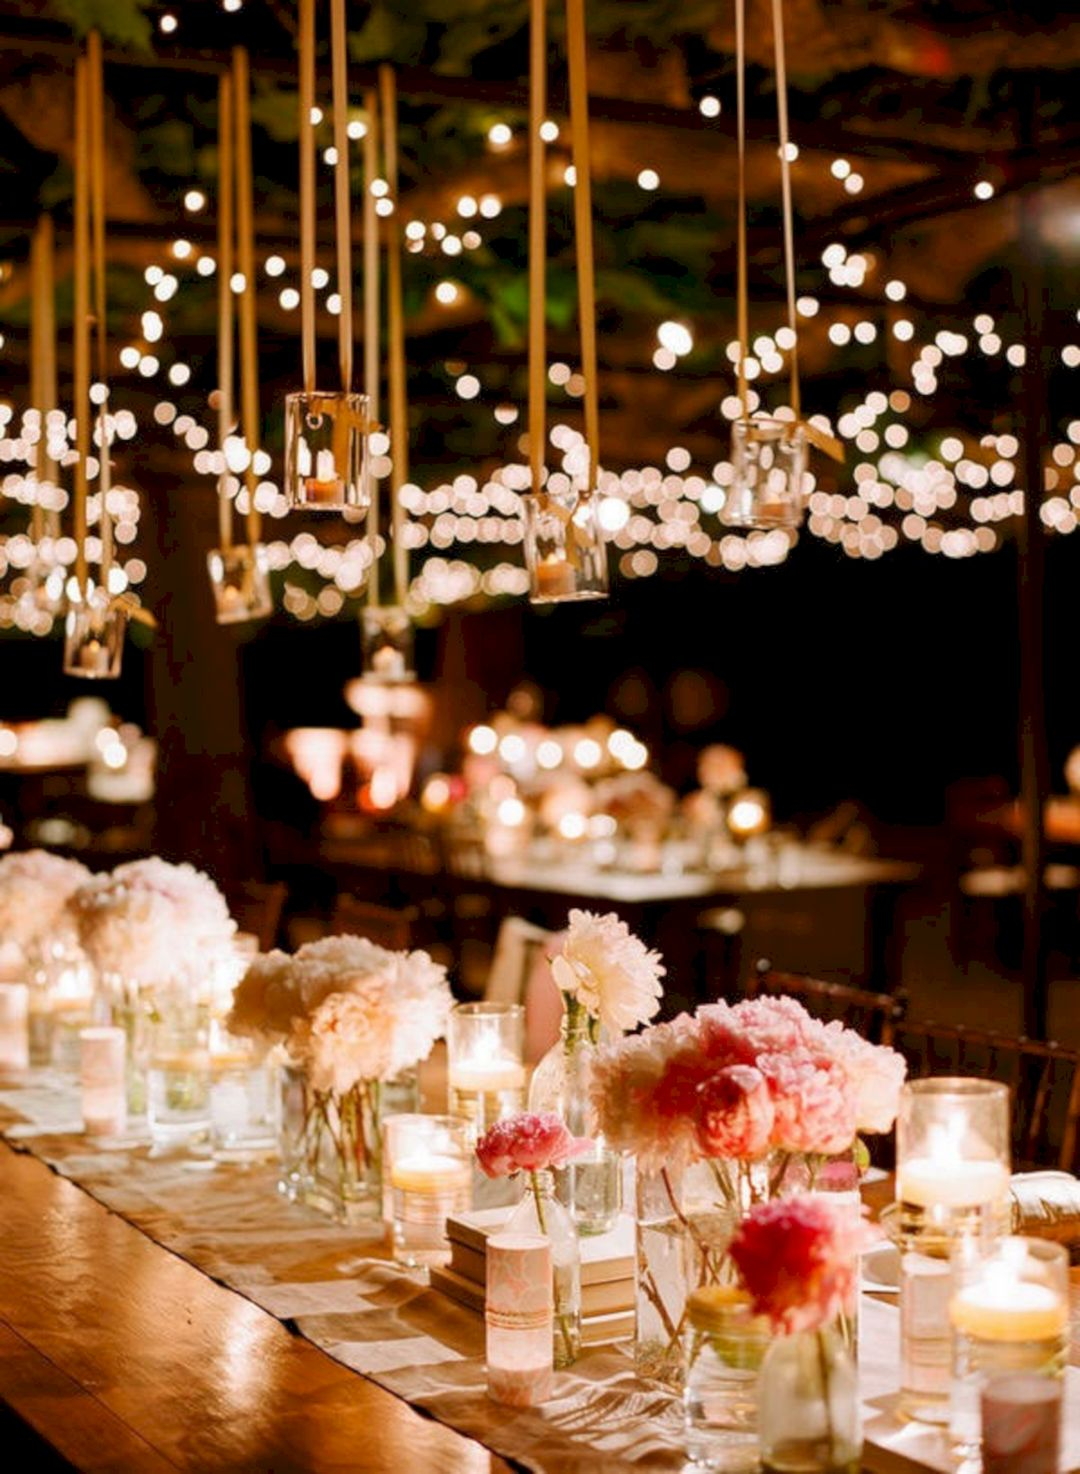 Wedding-Hanging-Lights.jpg